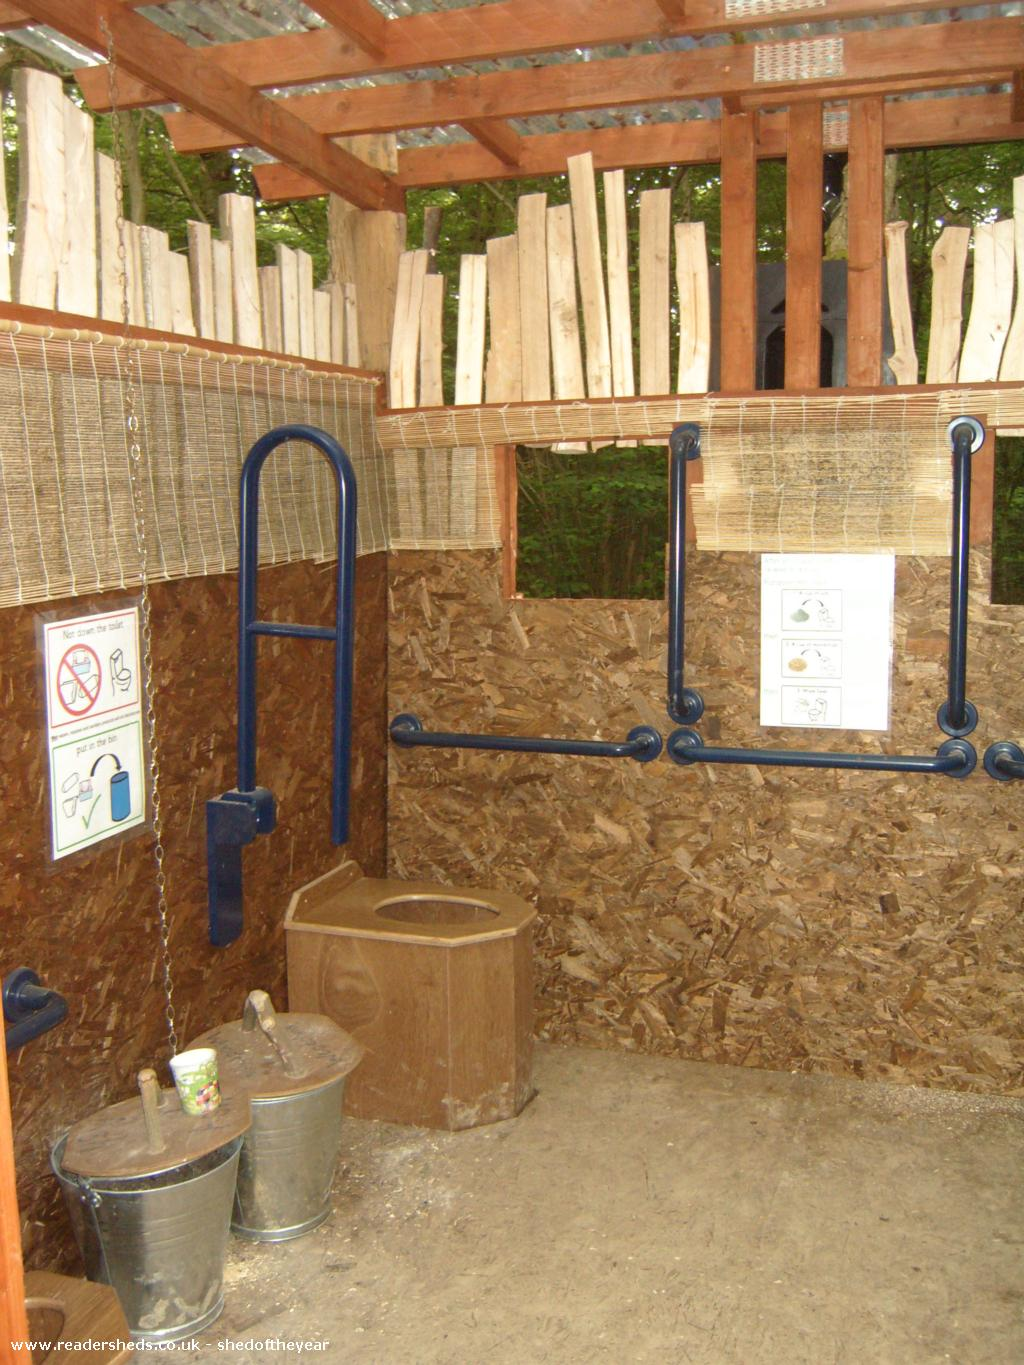 Fully accessible composting woodland toilet